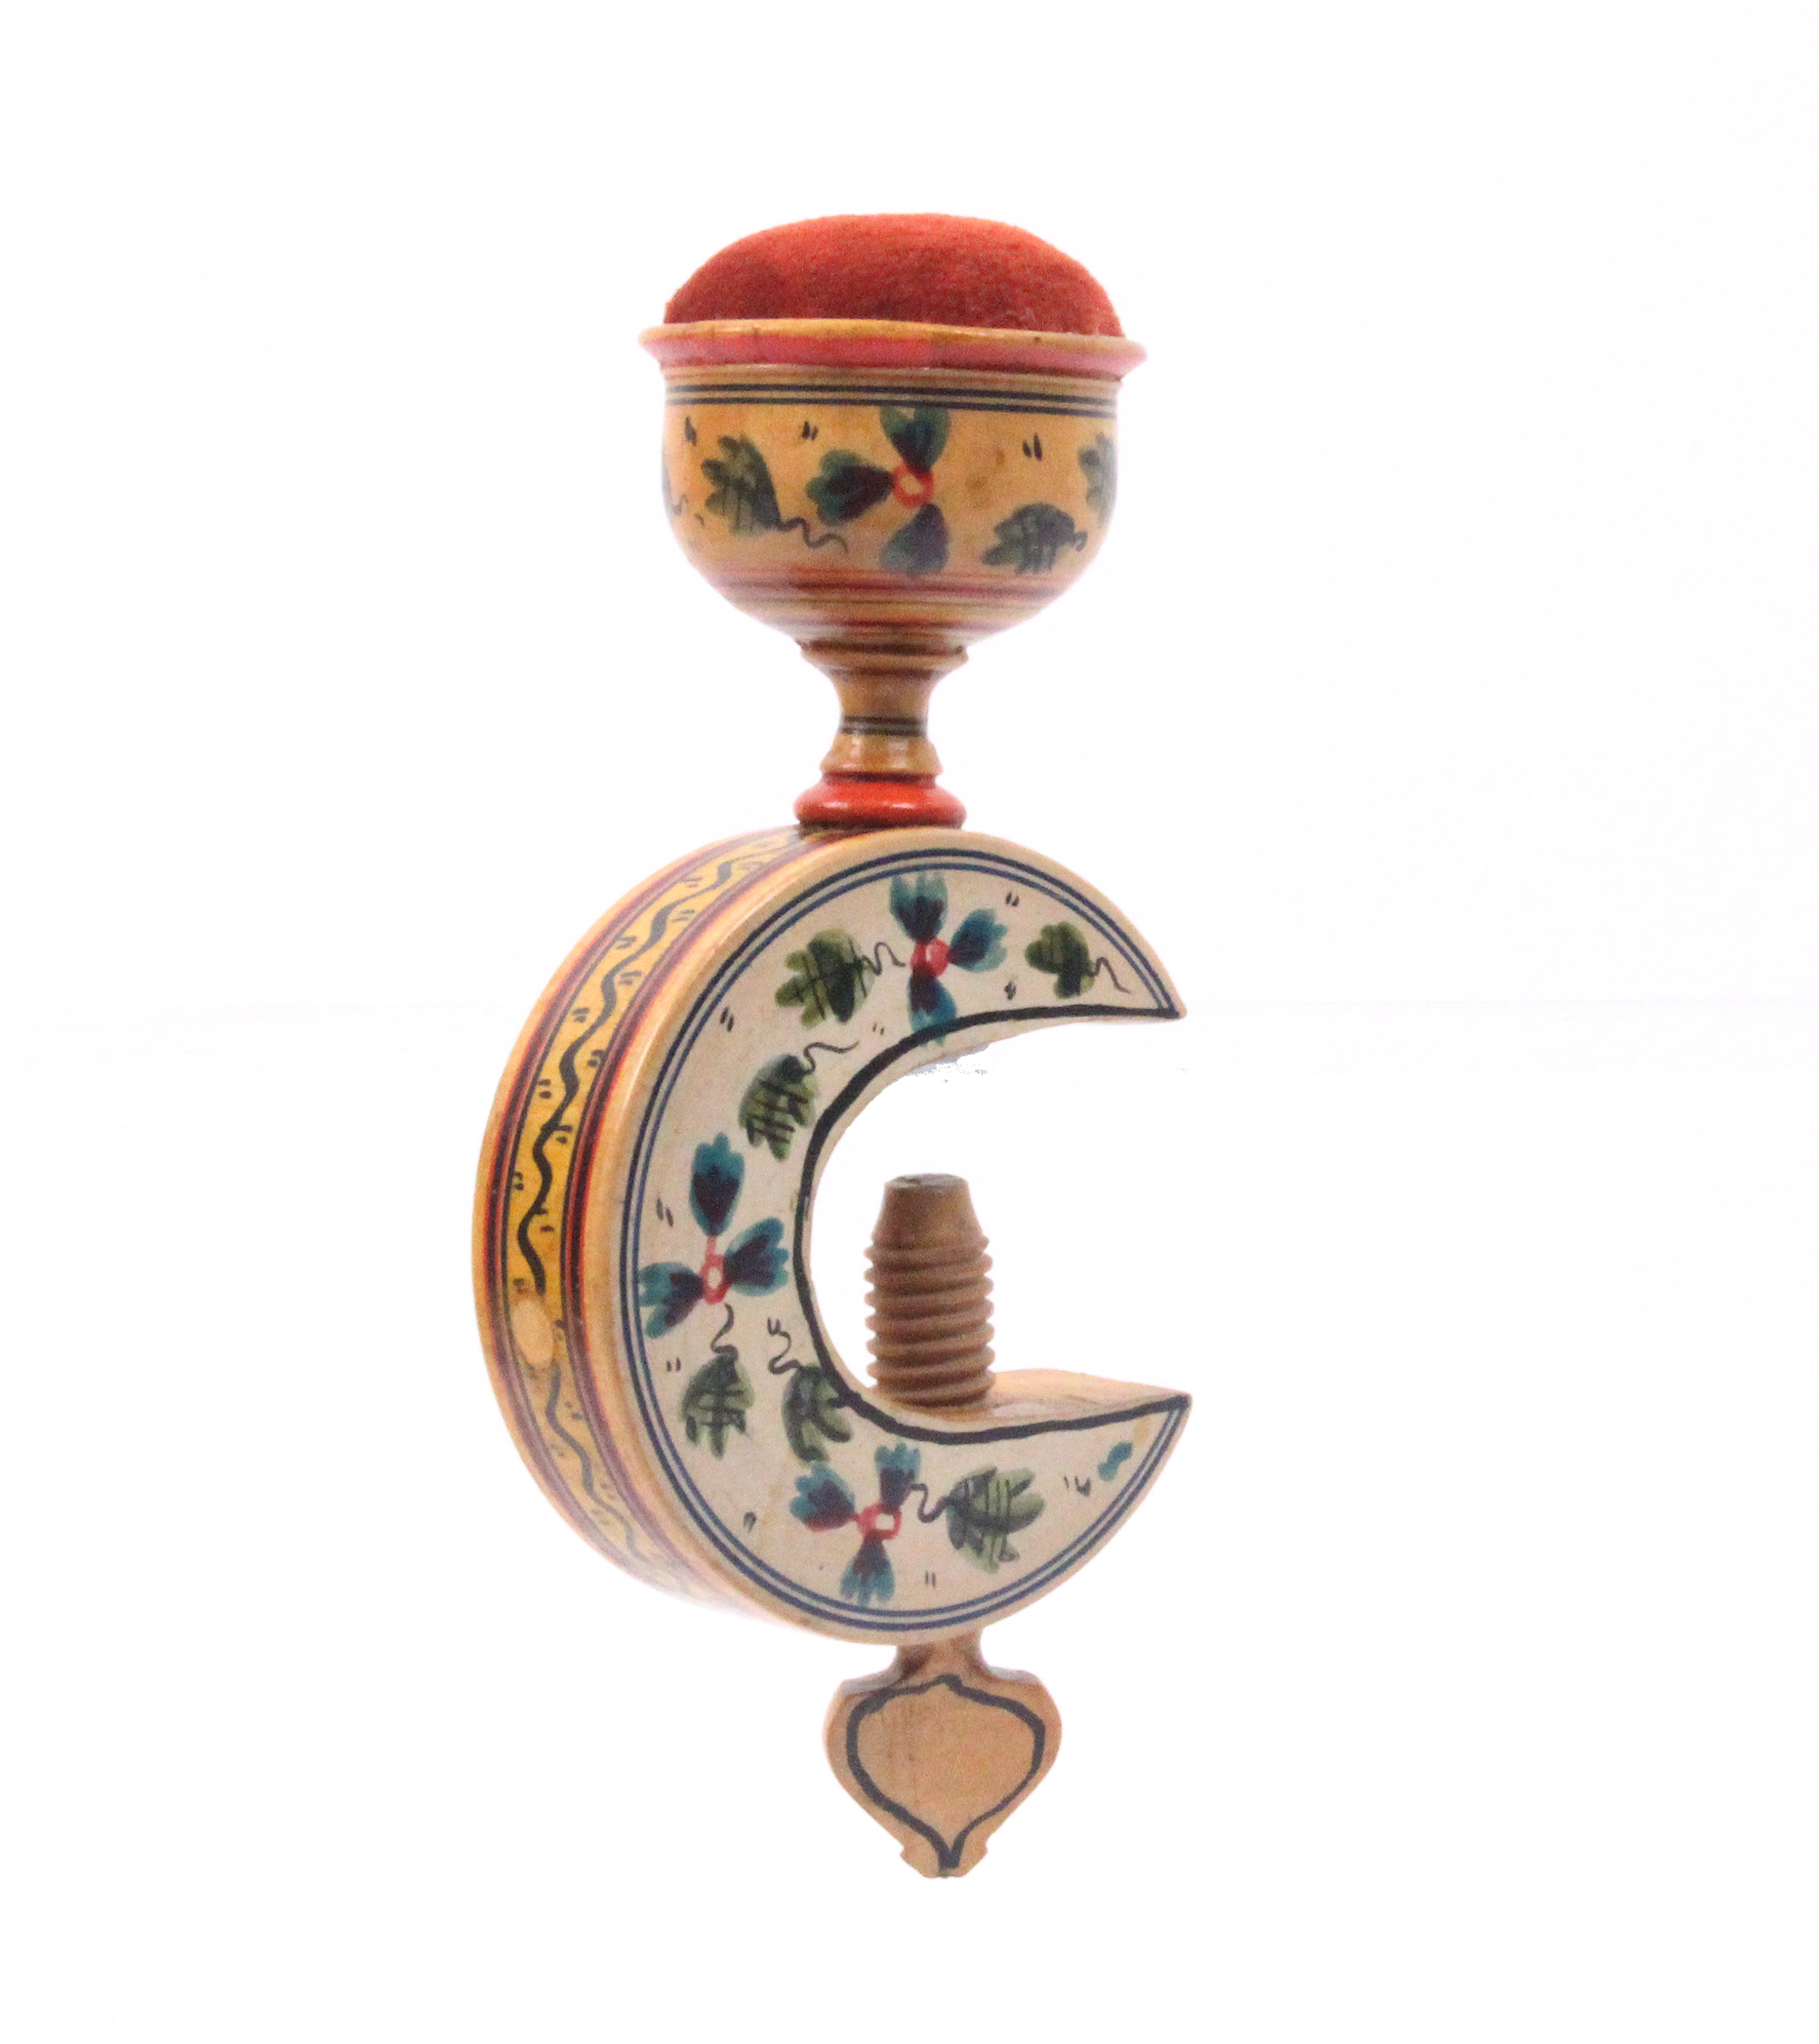 Lot 4 - A painted Tunbridge ware sewing clamp, the 'C' frame painted with flowers below a vase form pin